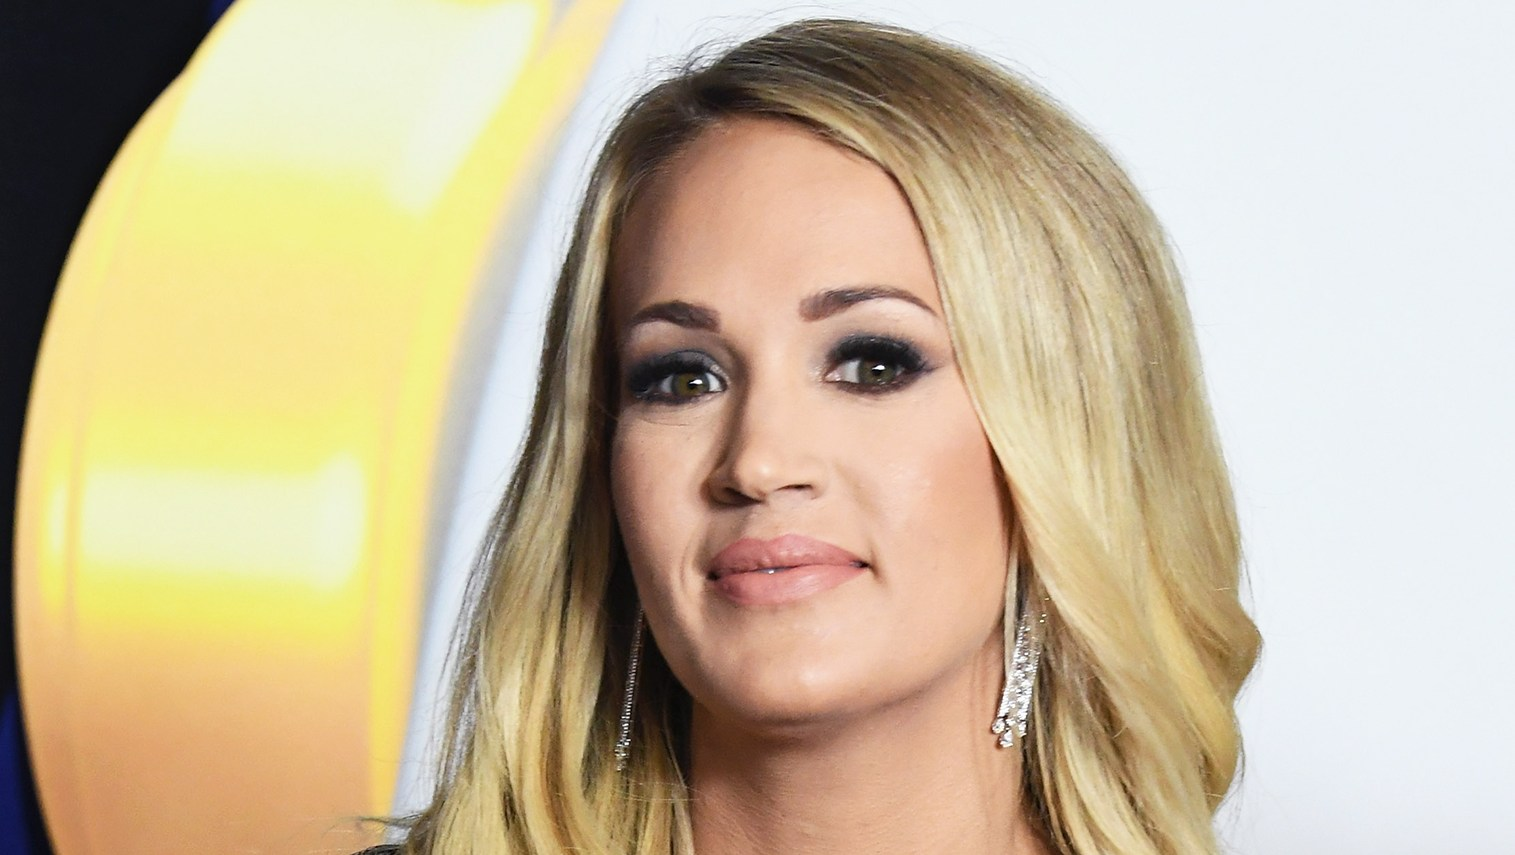 Carrie Underwood Laments Gym Difficulties: After Baby No. 2, 'My Body Has Not Belonged to Me'